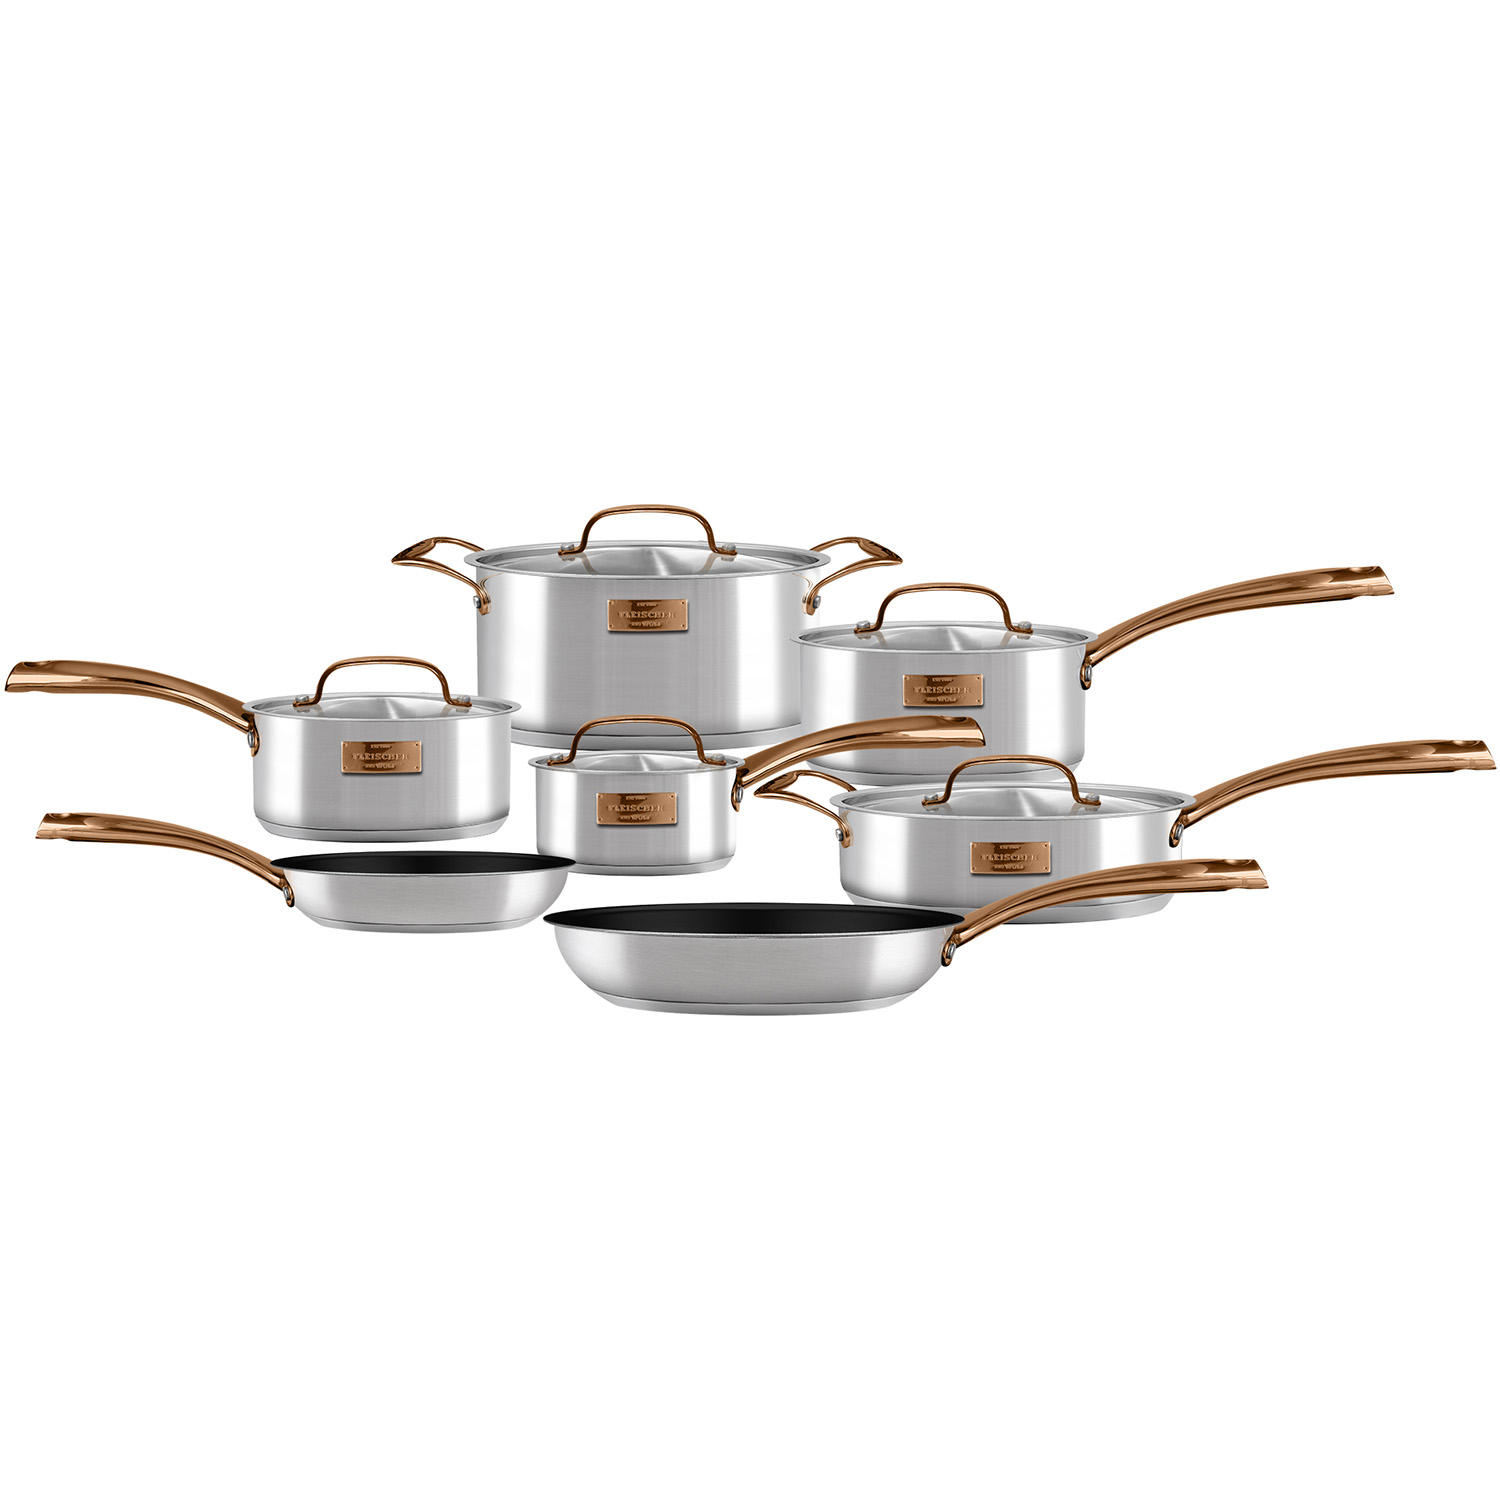 Fleischer and Wolf London 12-Piece Cookware Set